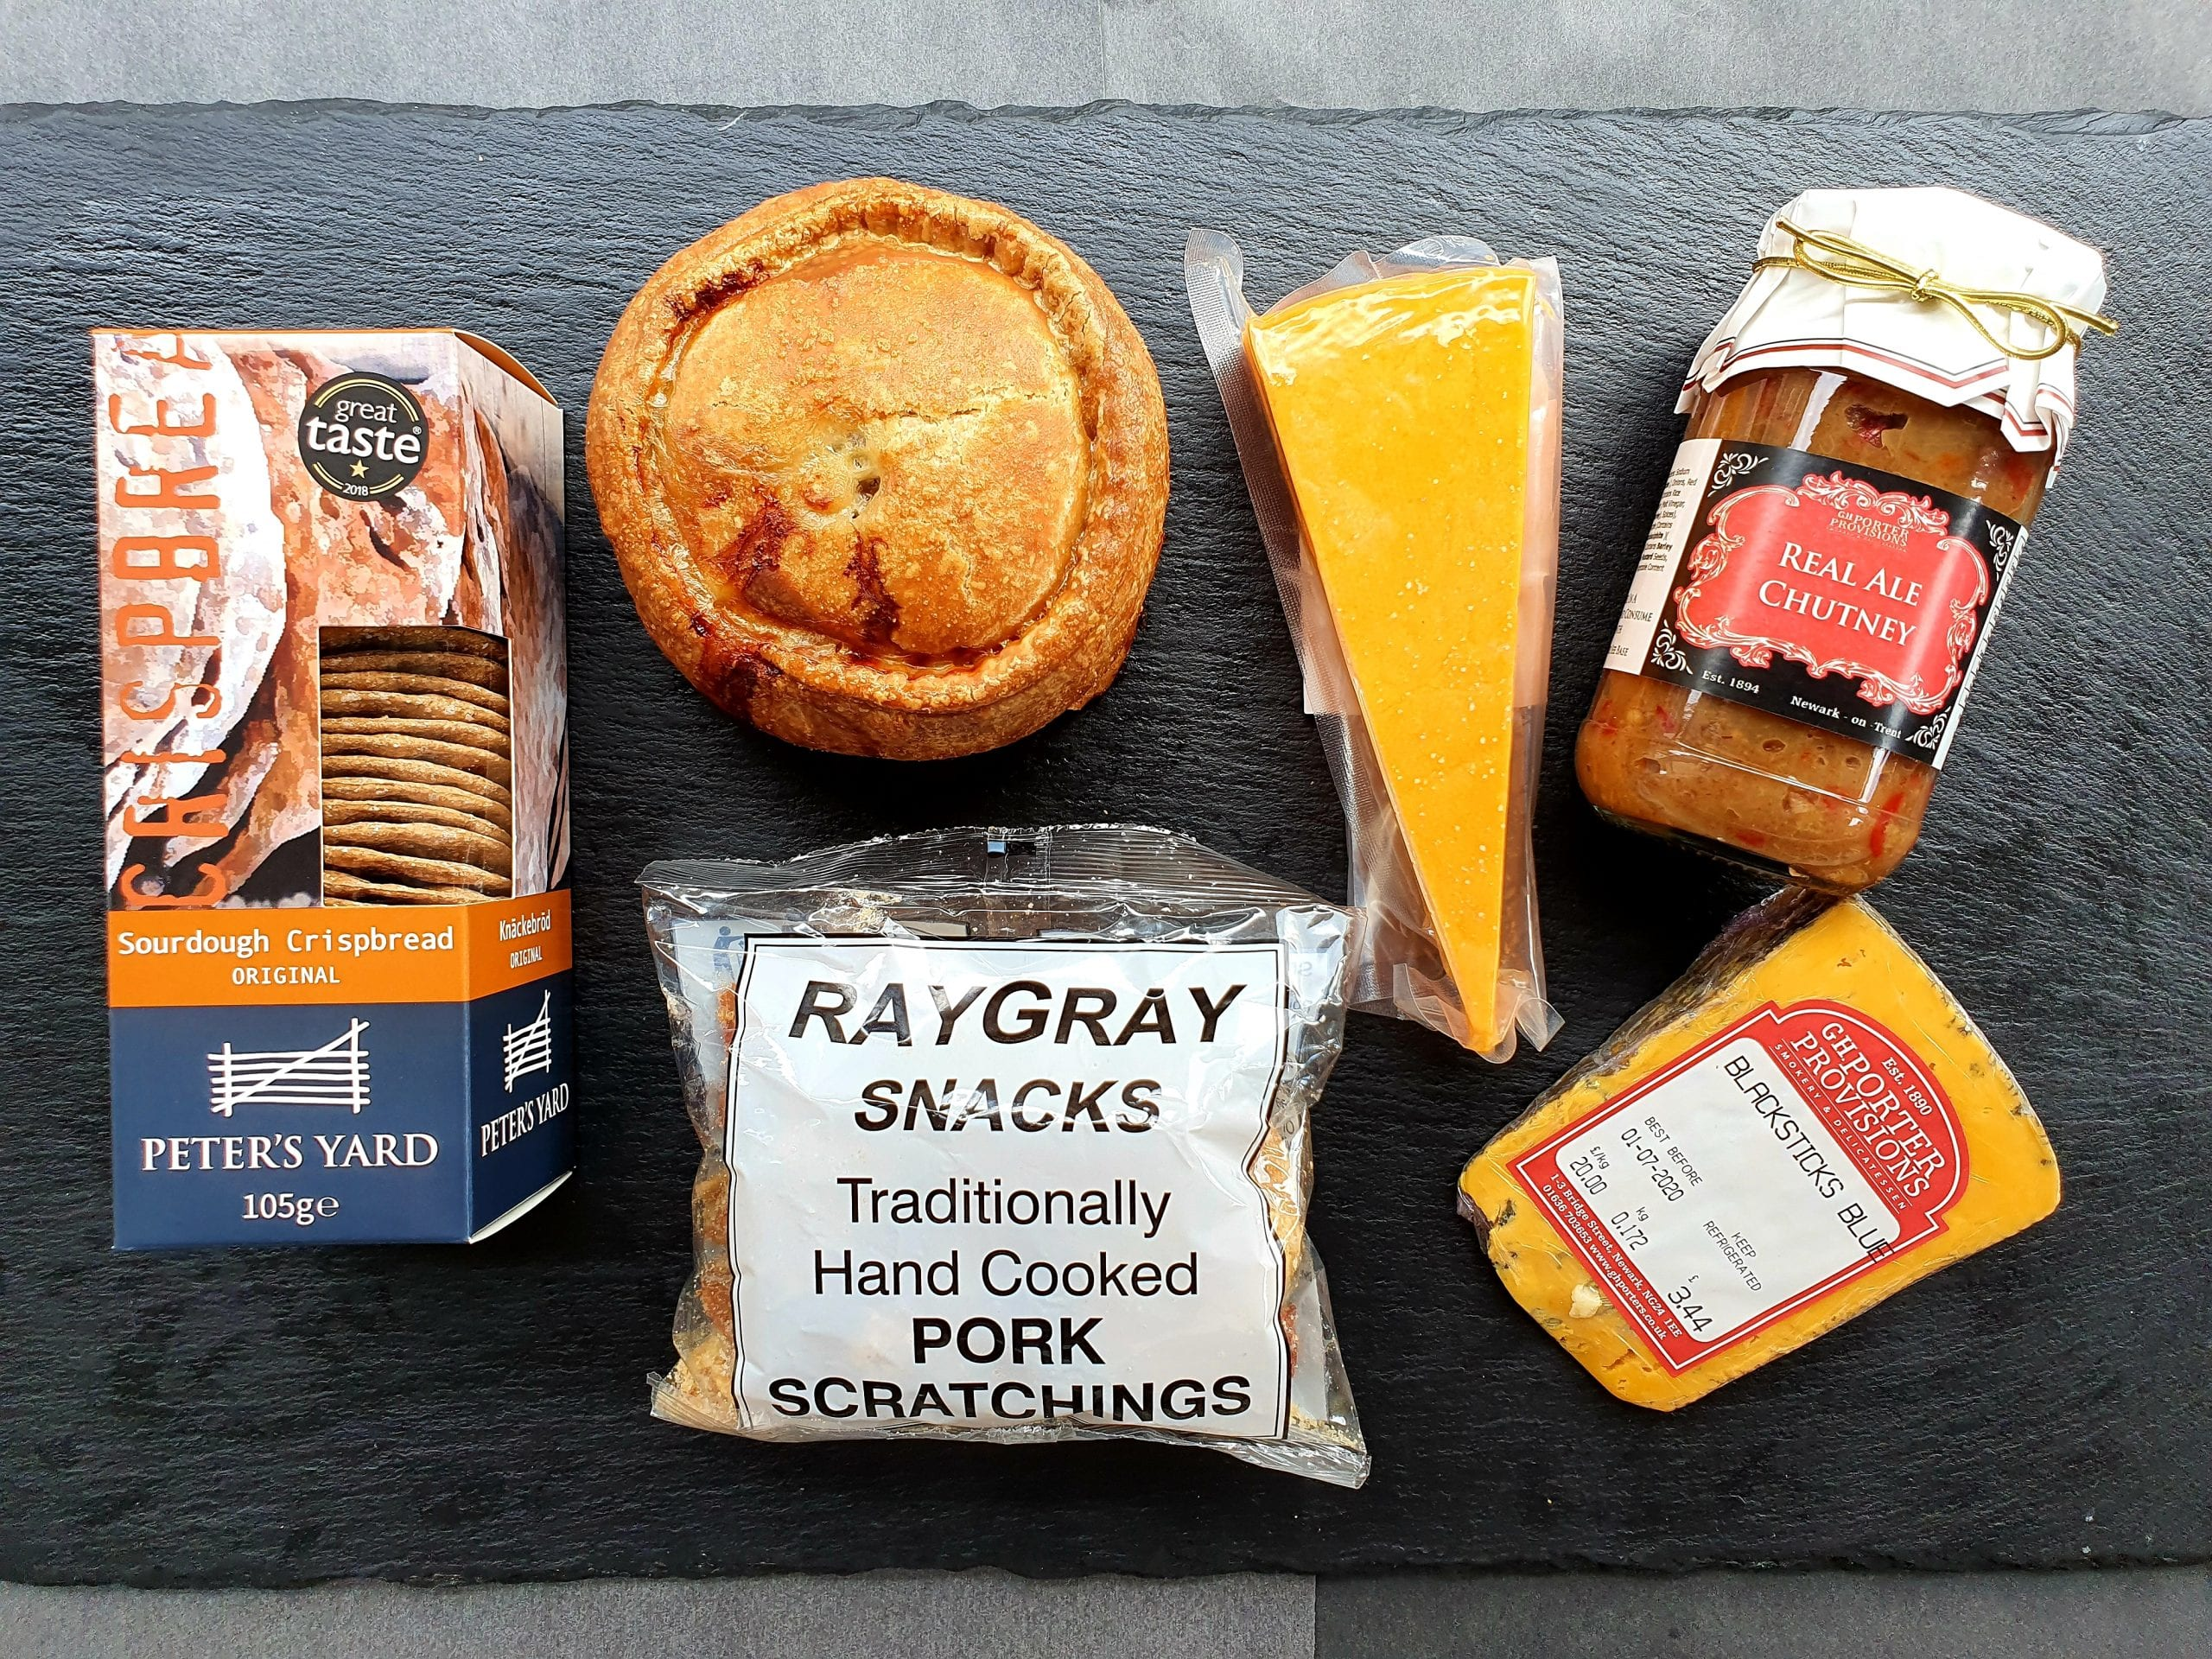 Ploughman, hamper, cheese, pork pie, pork, scratchings